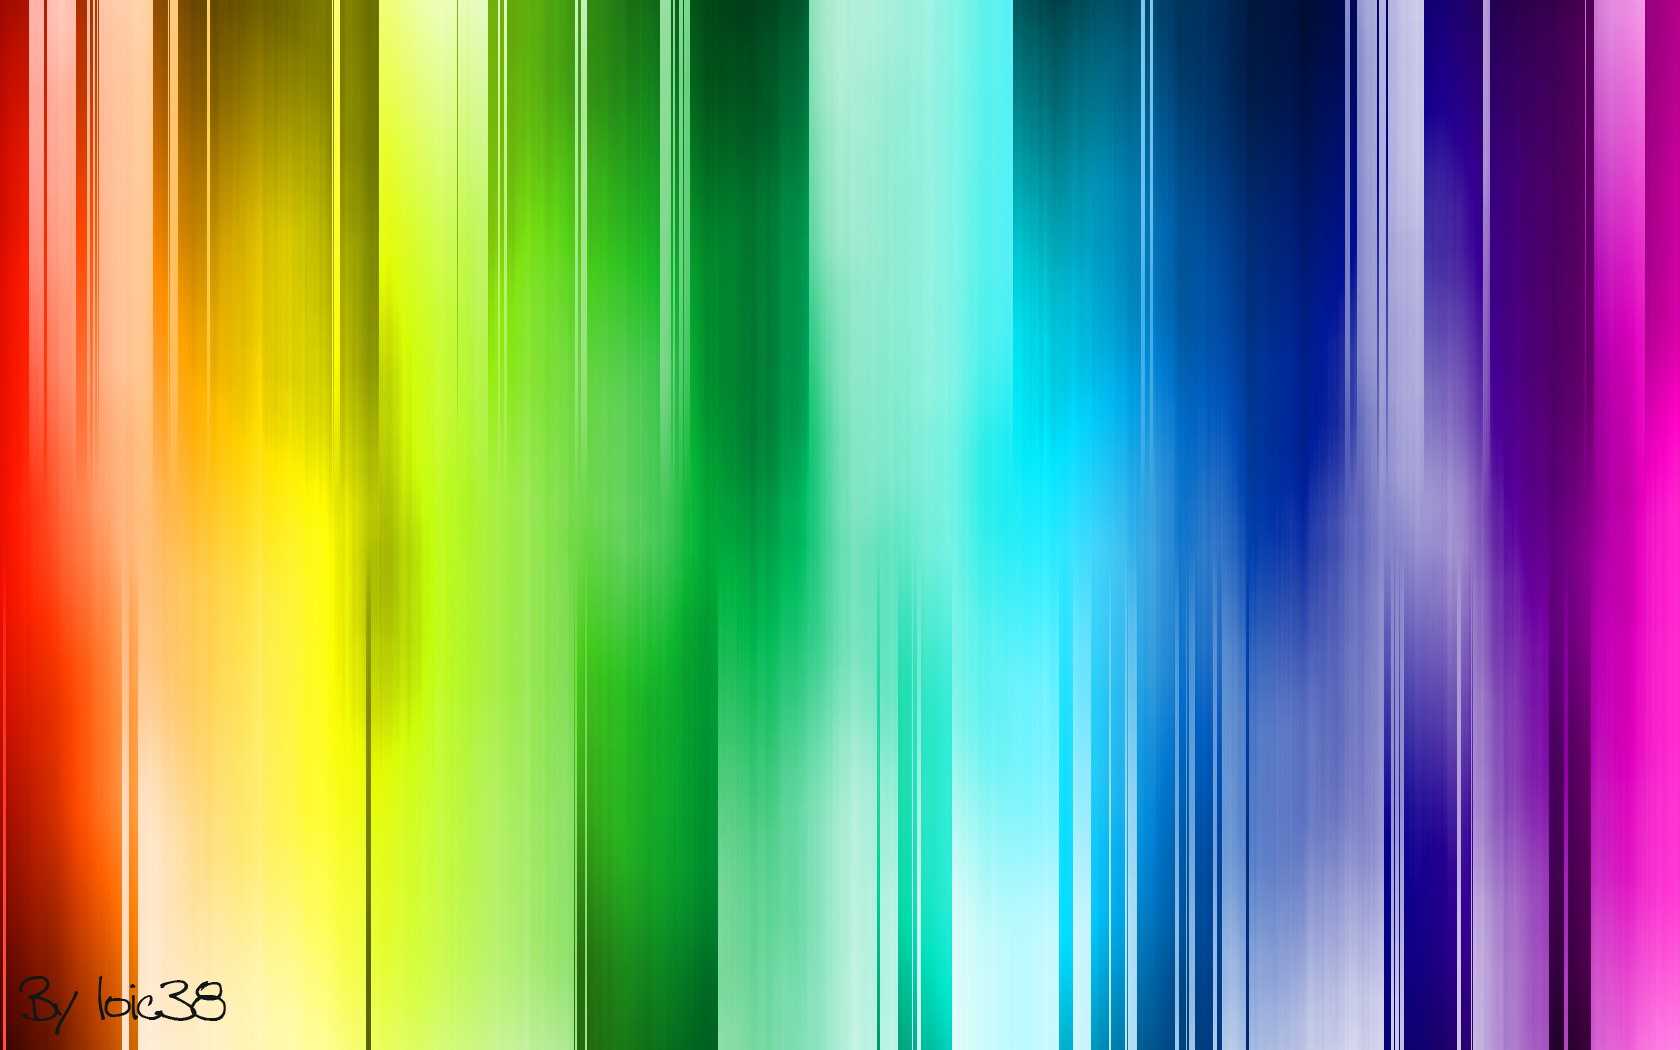 Abstract Background of Colored Bars by kayller77